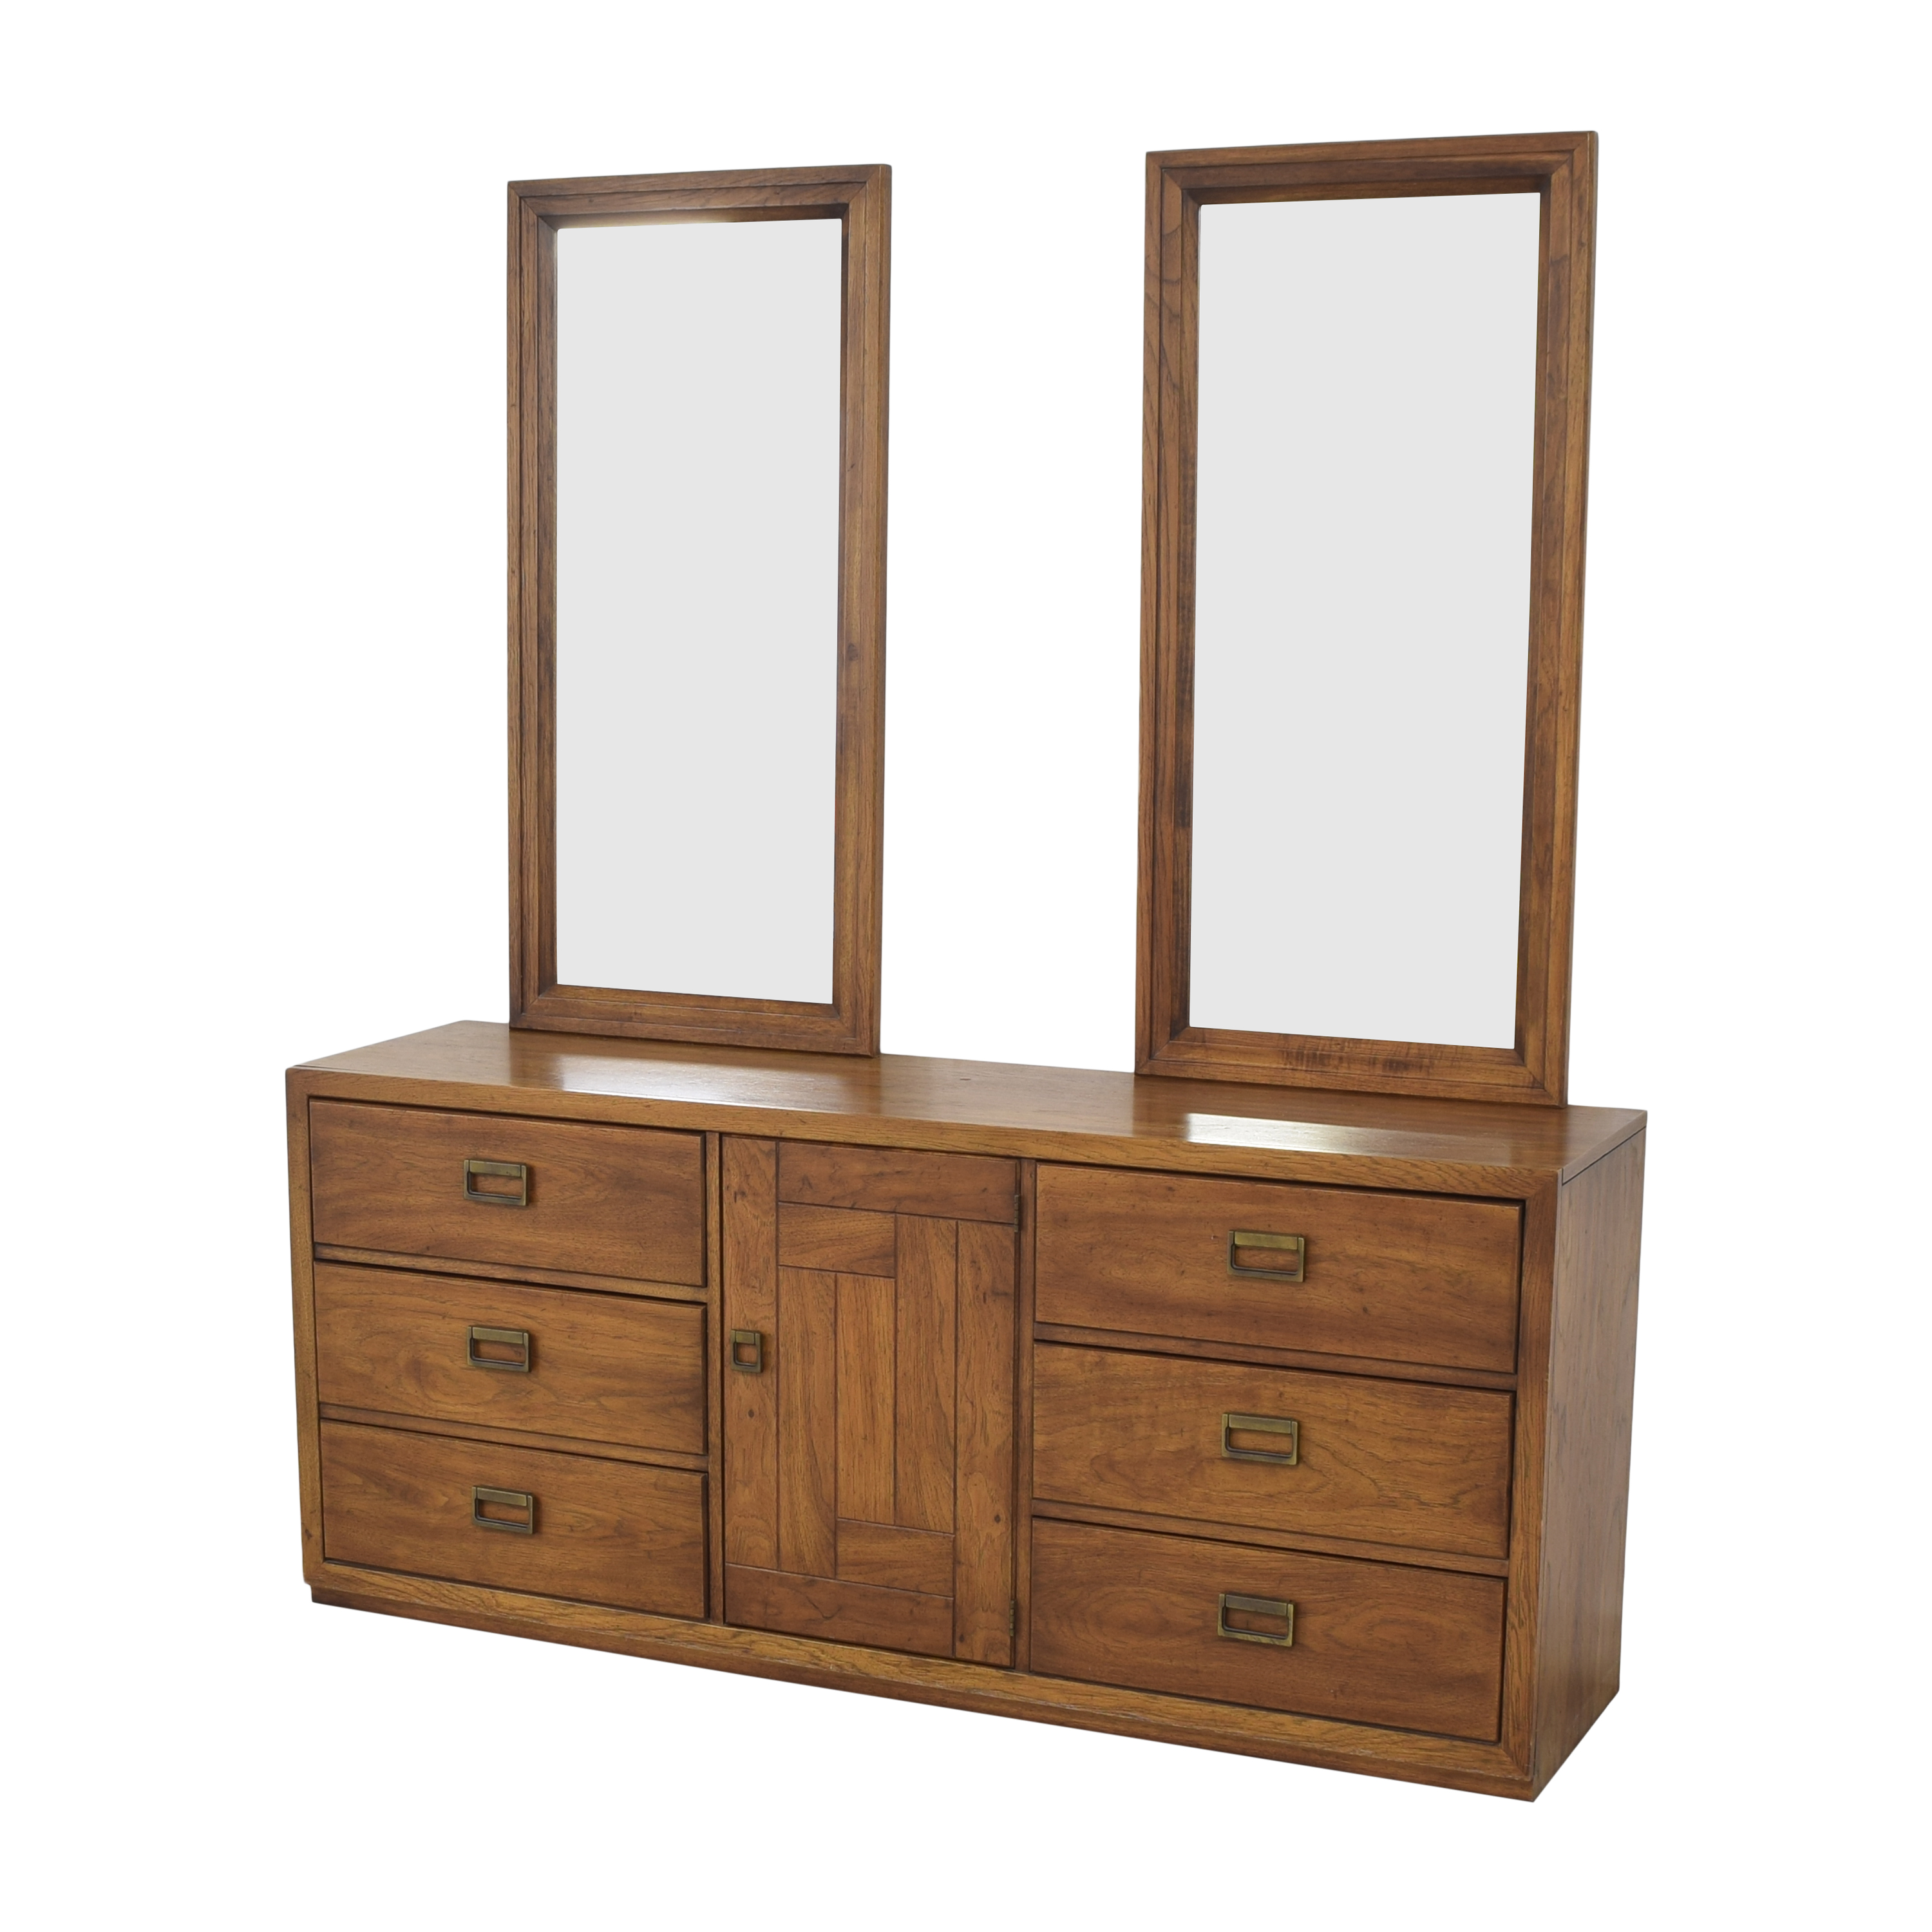 Huntley Huntley Triple Dresser with Mirrors coupon